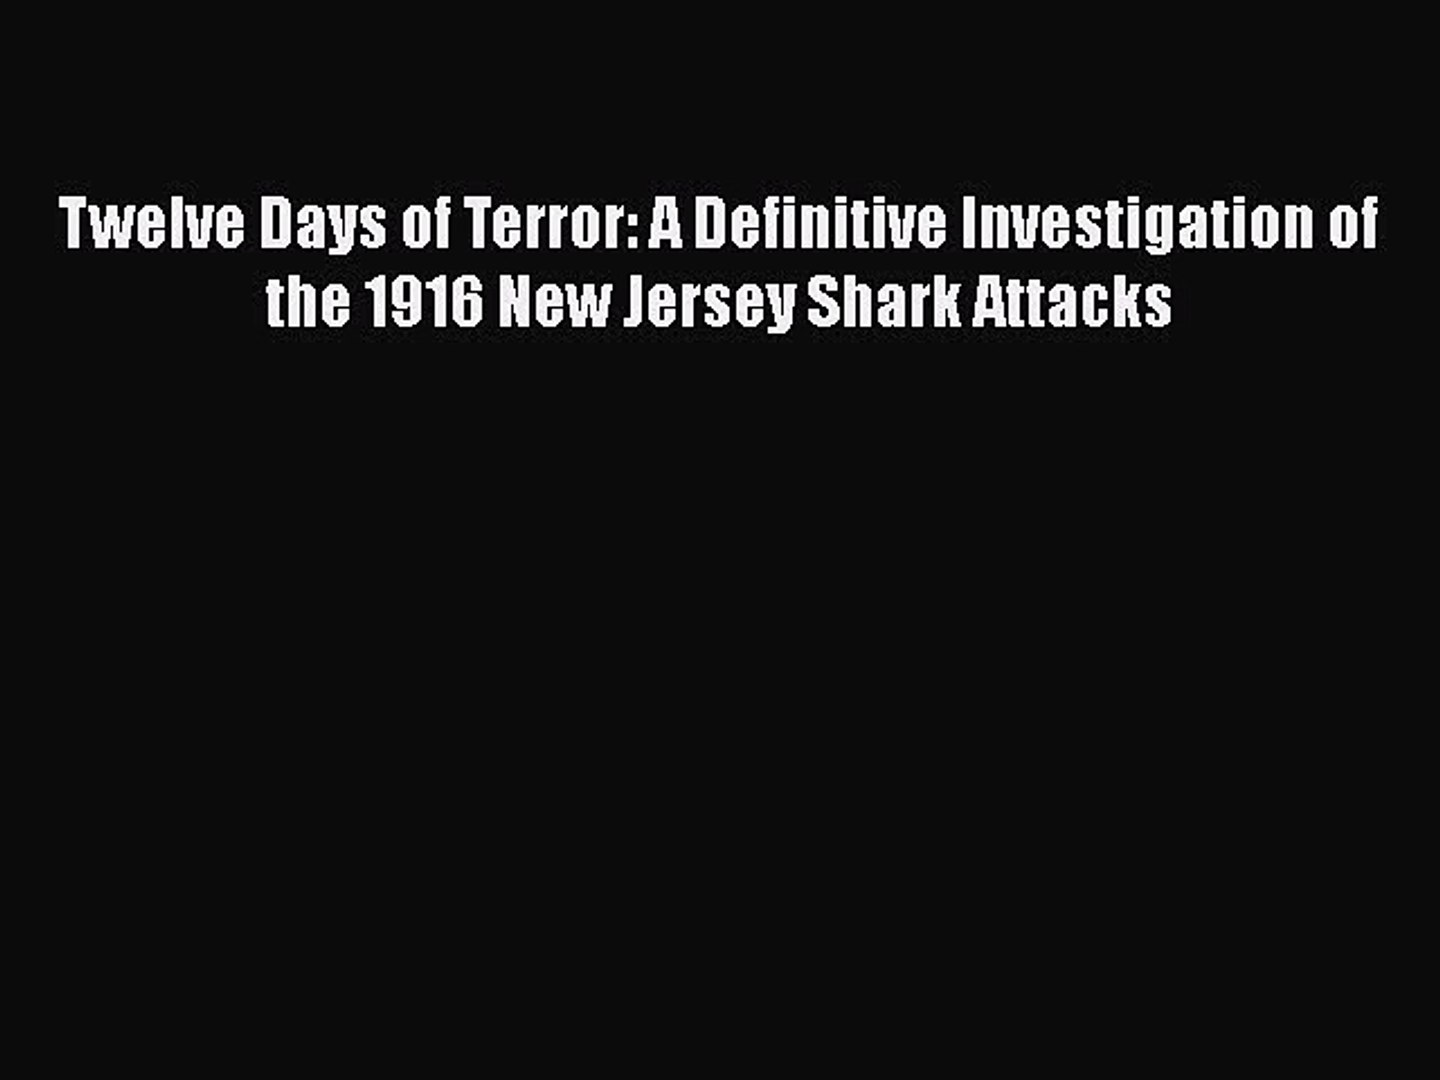 Read Twelve Days of Terror: A Definitive Investigation of the 1916 New Jersey Shark Attacks